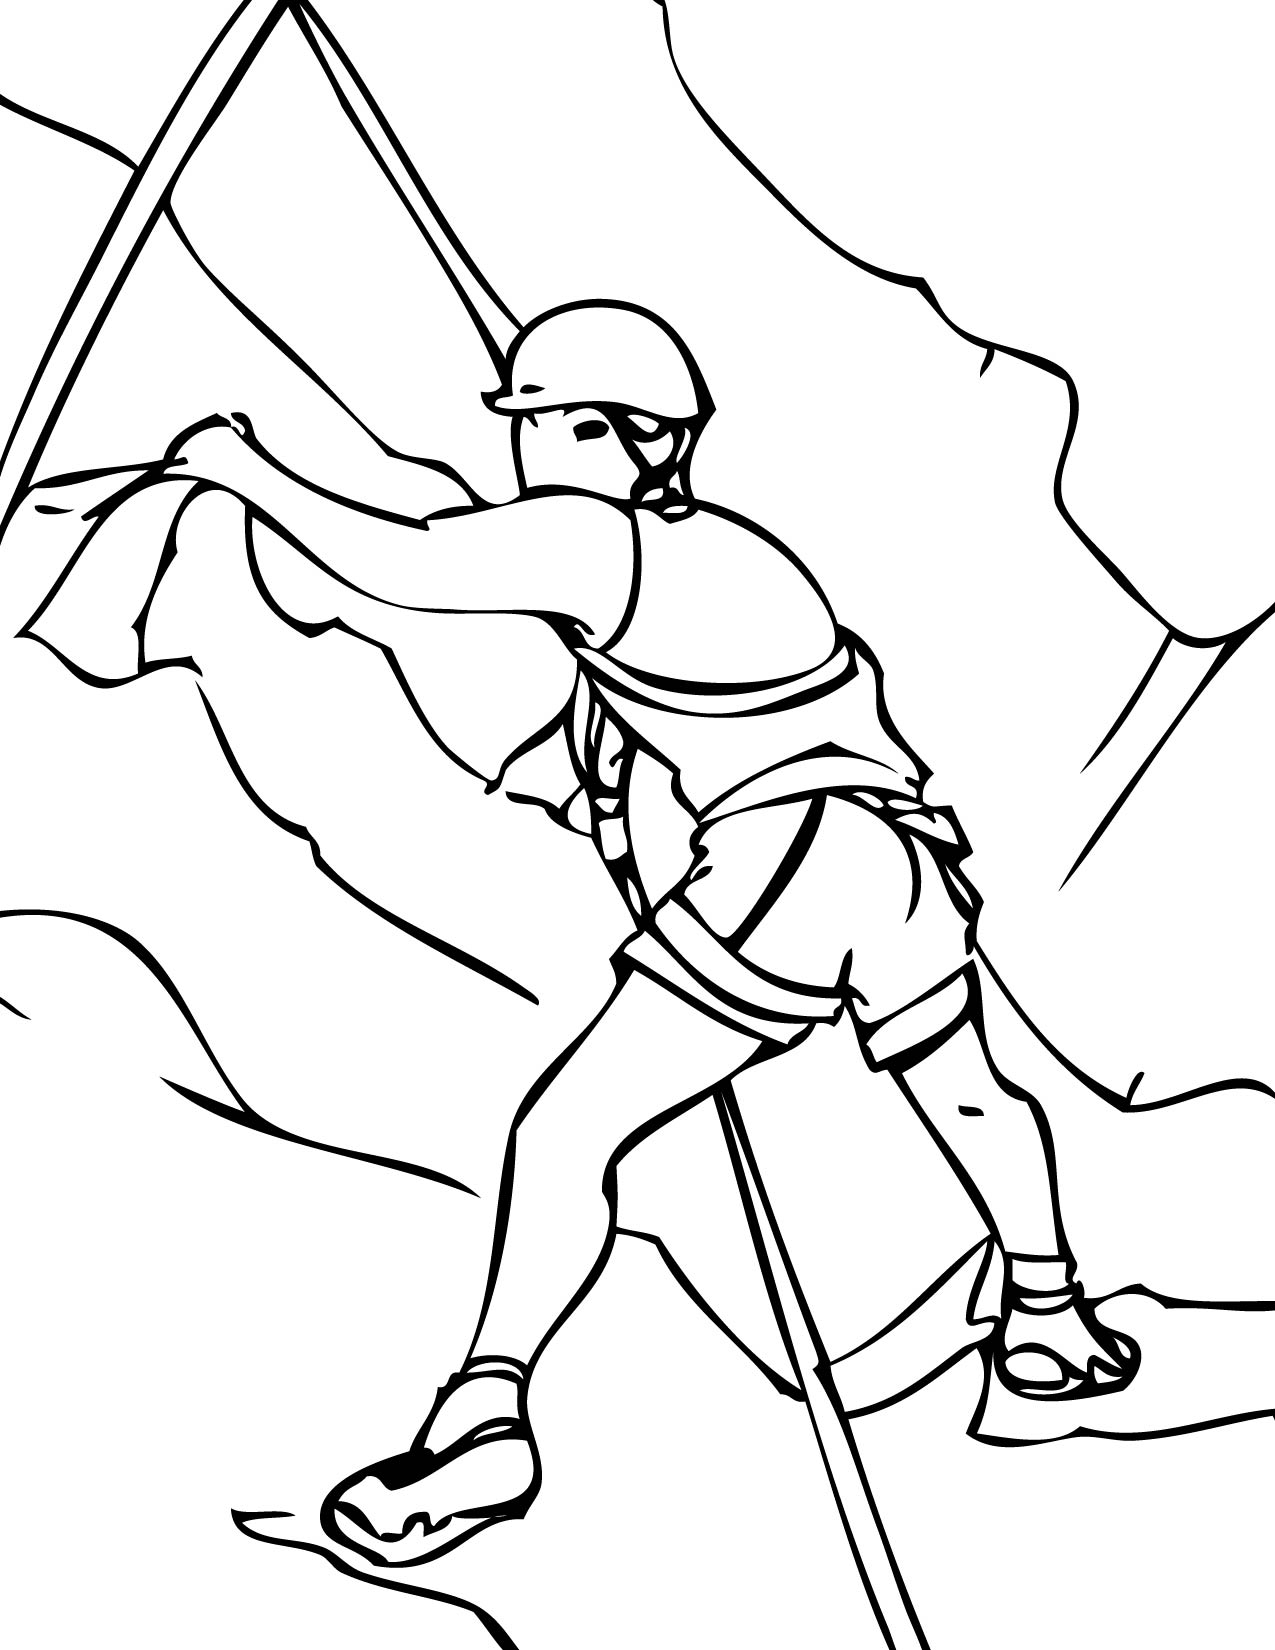 Rock coloring pages to download and print for free